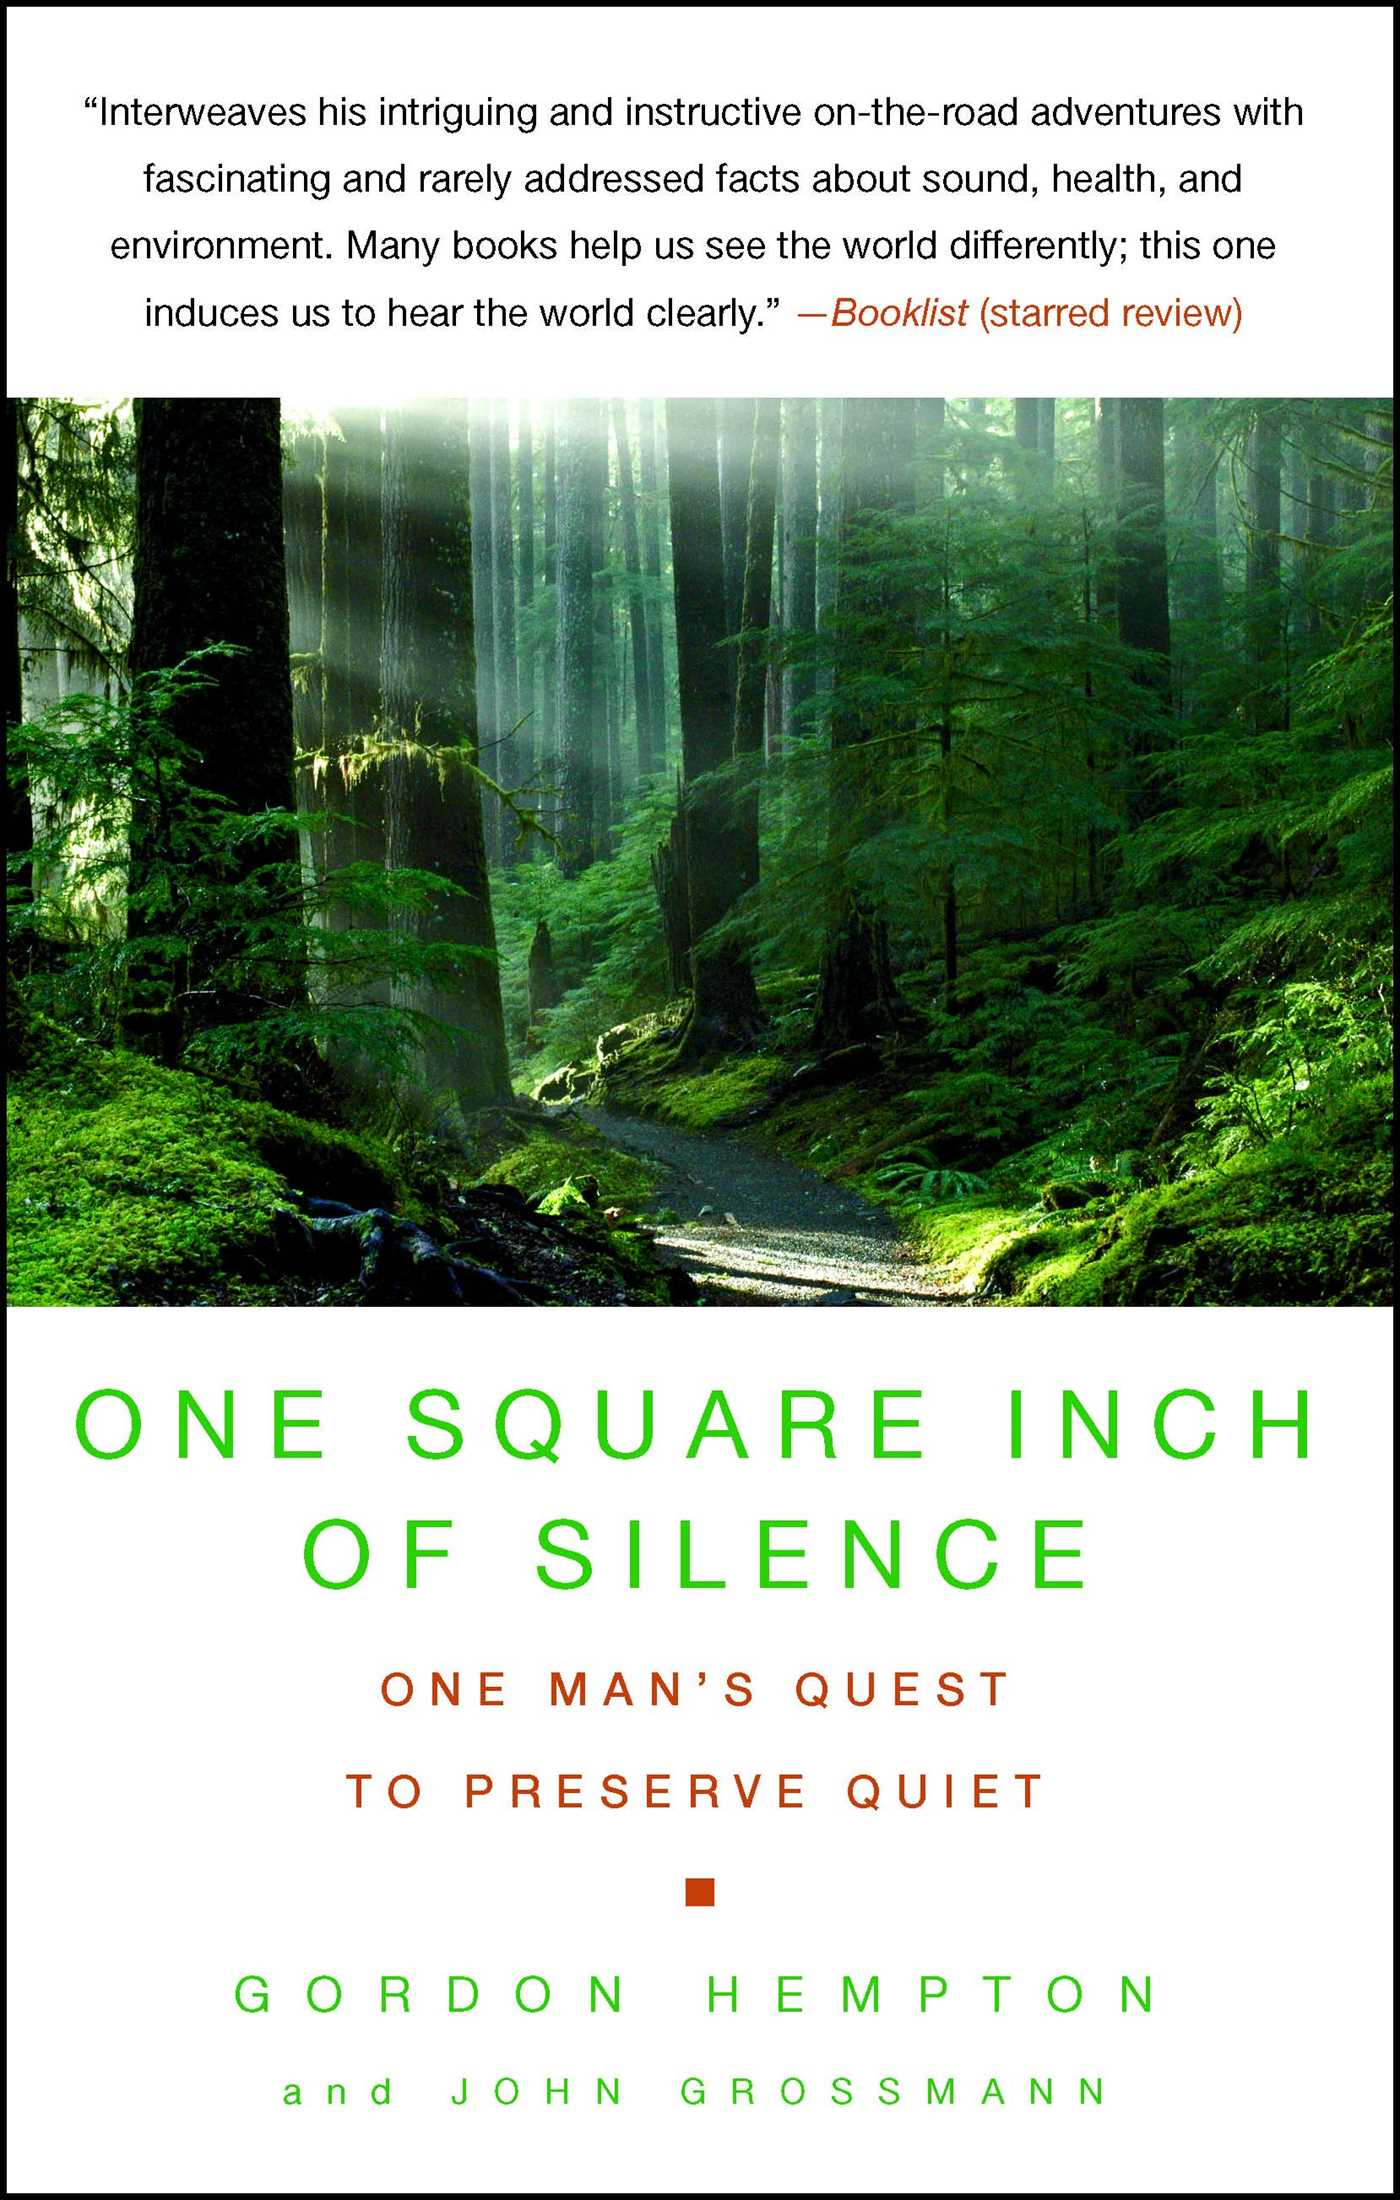 One-square-inch-of-silence-9781416559825_hr